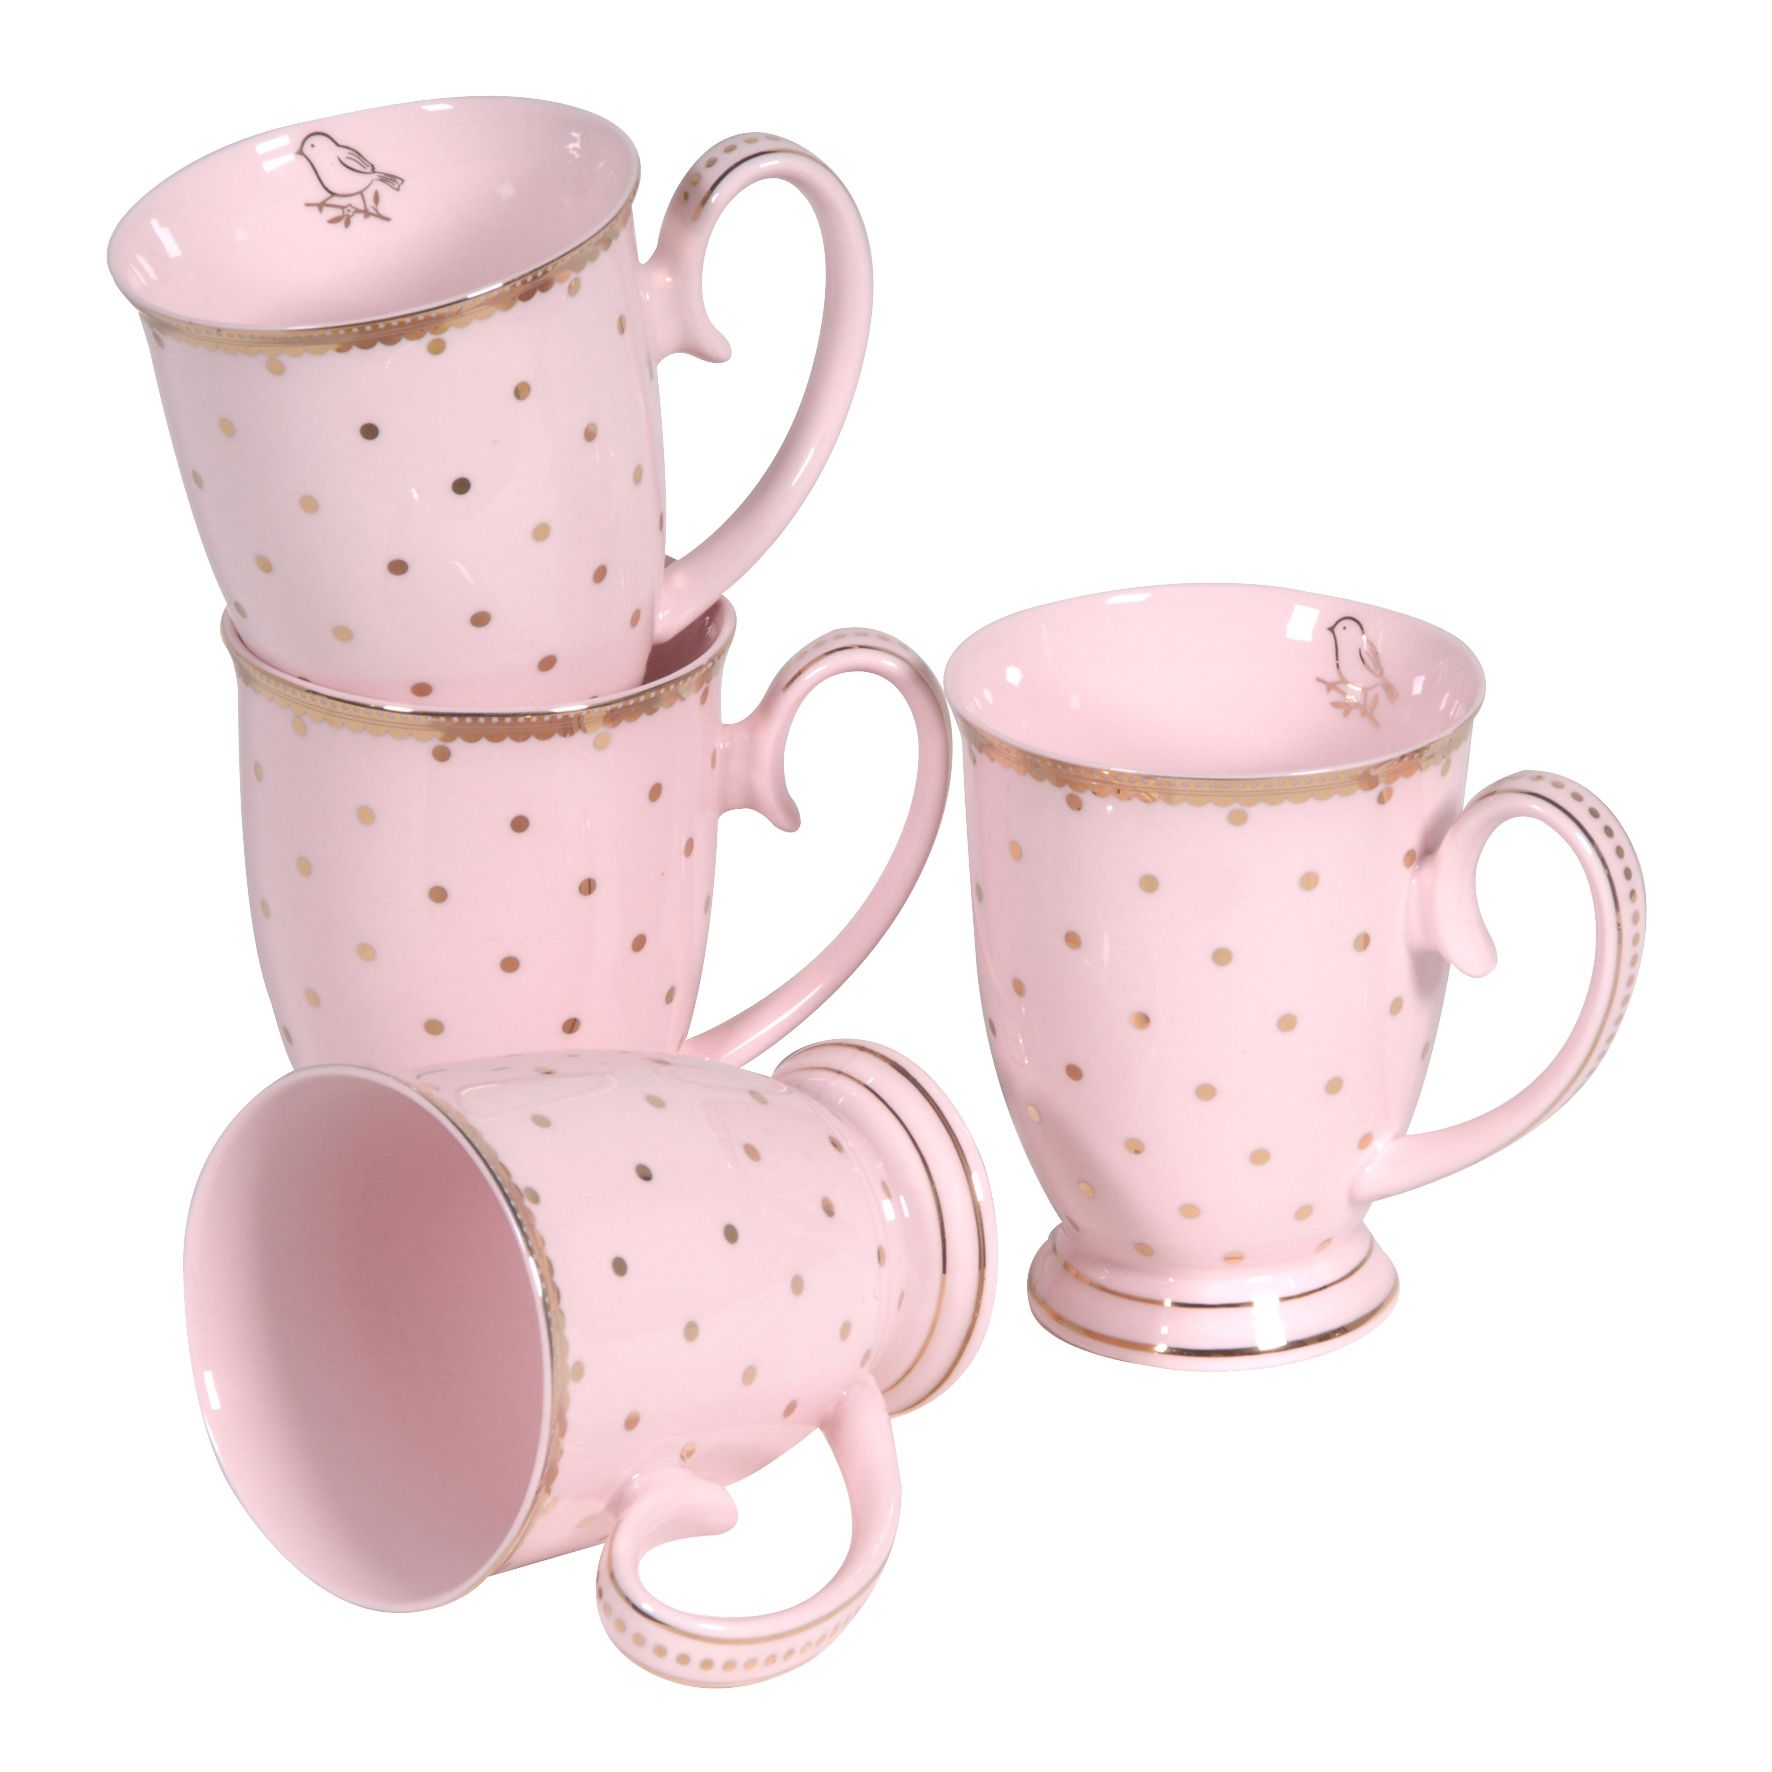 Küche Pastell Rosa Gone Dotty Pink Mugs Kitchen Accessories Accessories